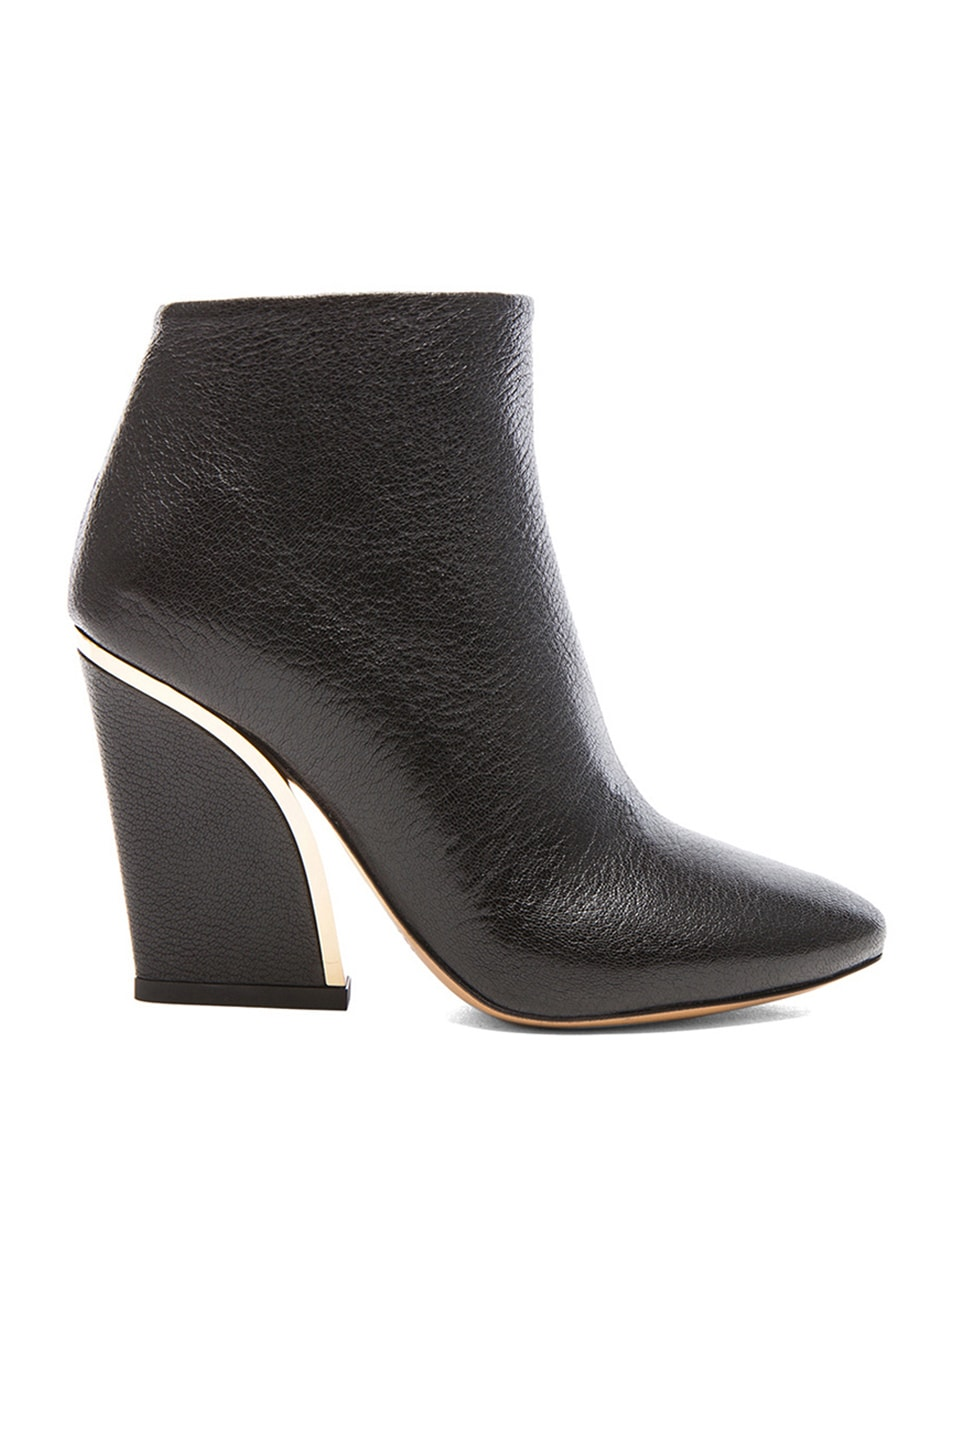 3918d034f9625 Image 1 of Chloe Gold Line Leather Ankle Boots in Black